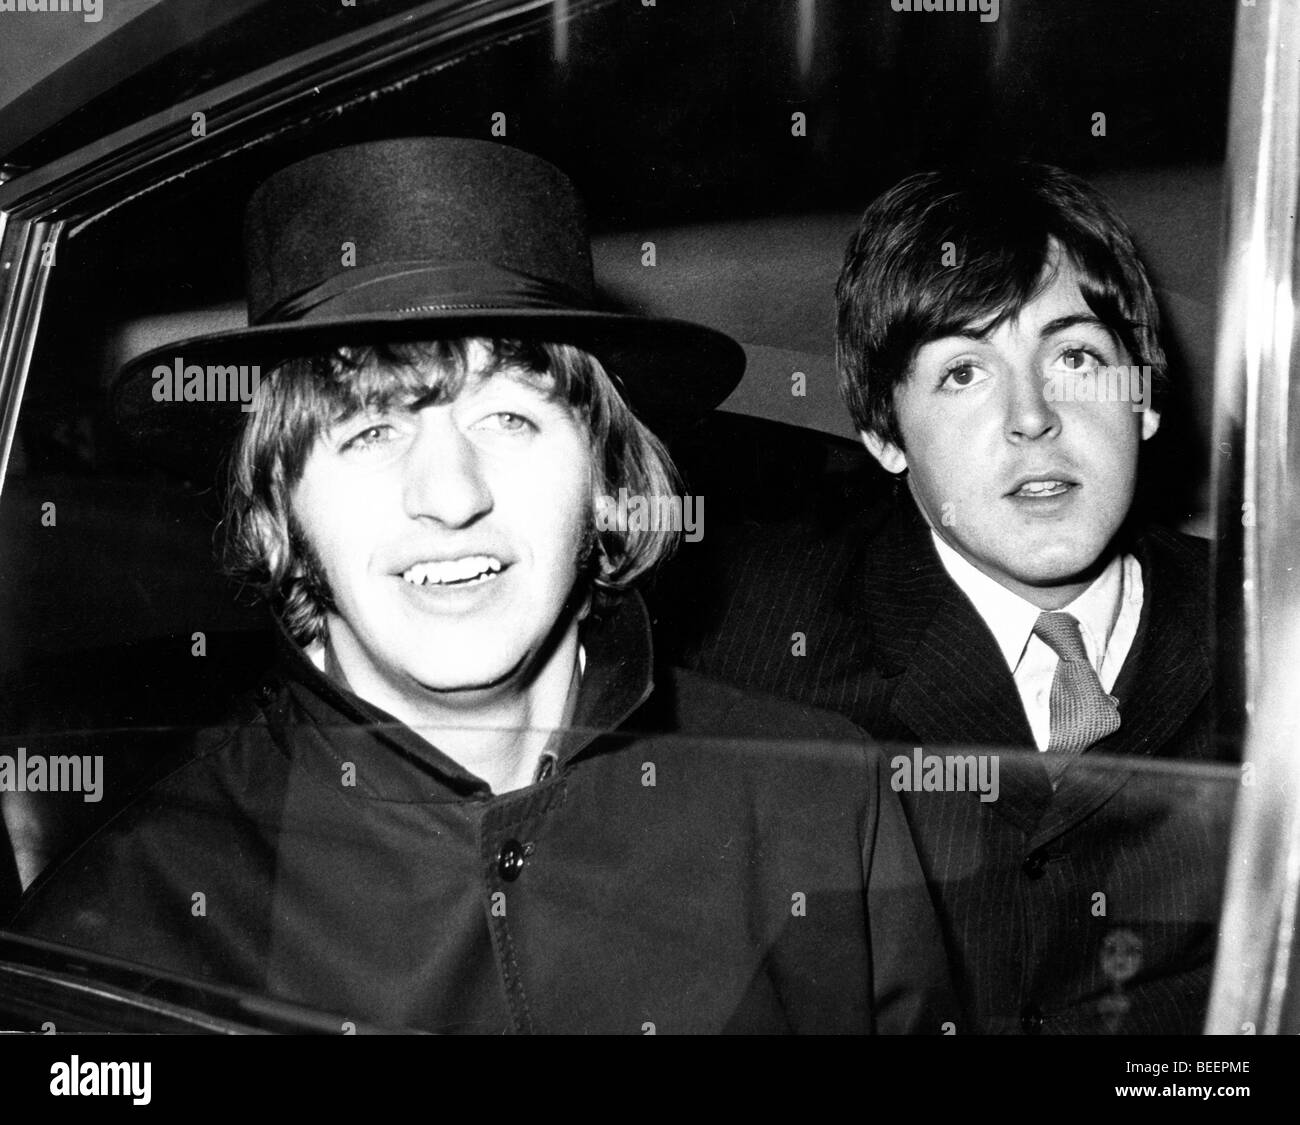 The Beatles Ringo Starr And Paul Mccartney In Car Stock Photo